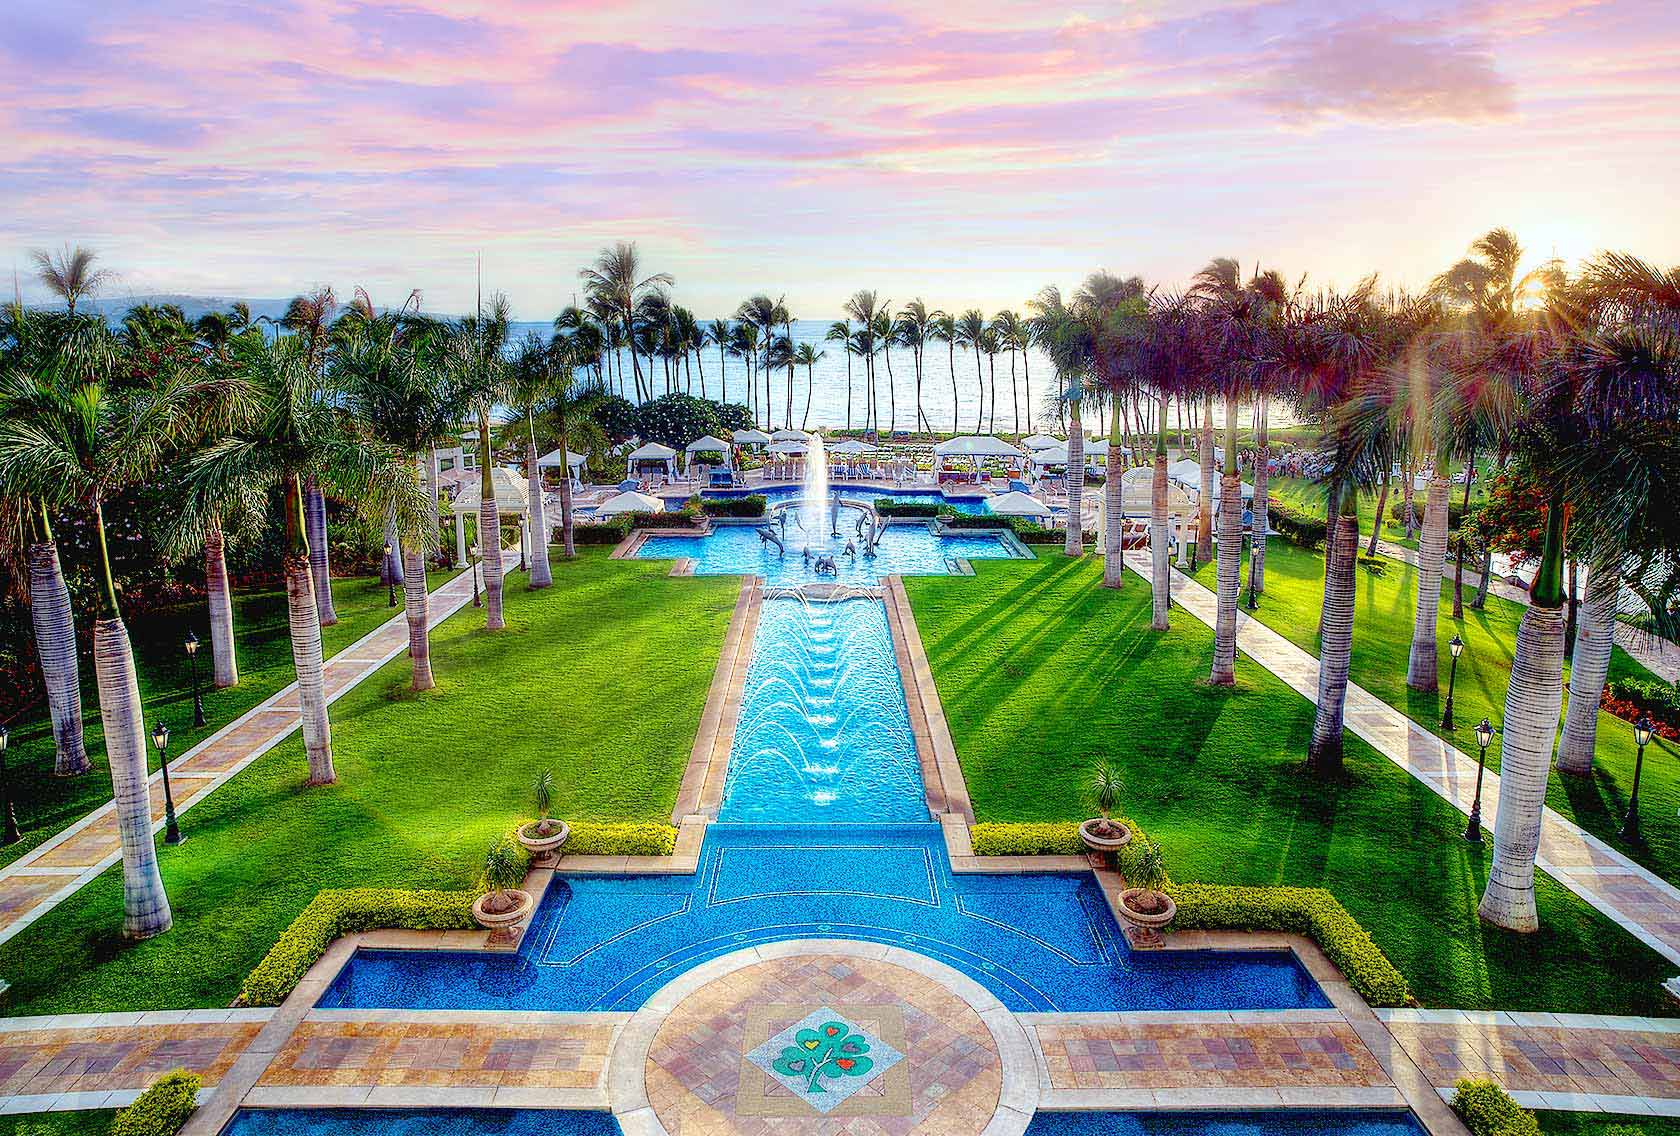 The bottom of the 4,850 sq. ft. adults-only Hibiscus Pool at the Grand Wailea Resort is inlaid with over 630,000 Mexican glass tiles in a hibiscus flower pattern.